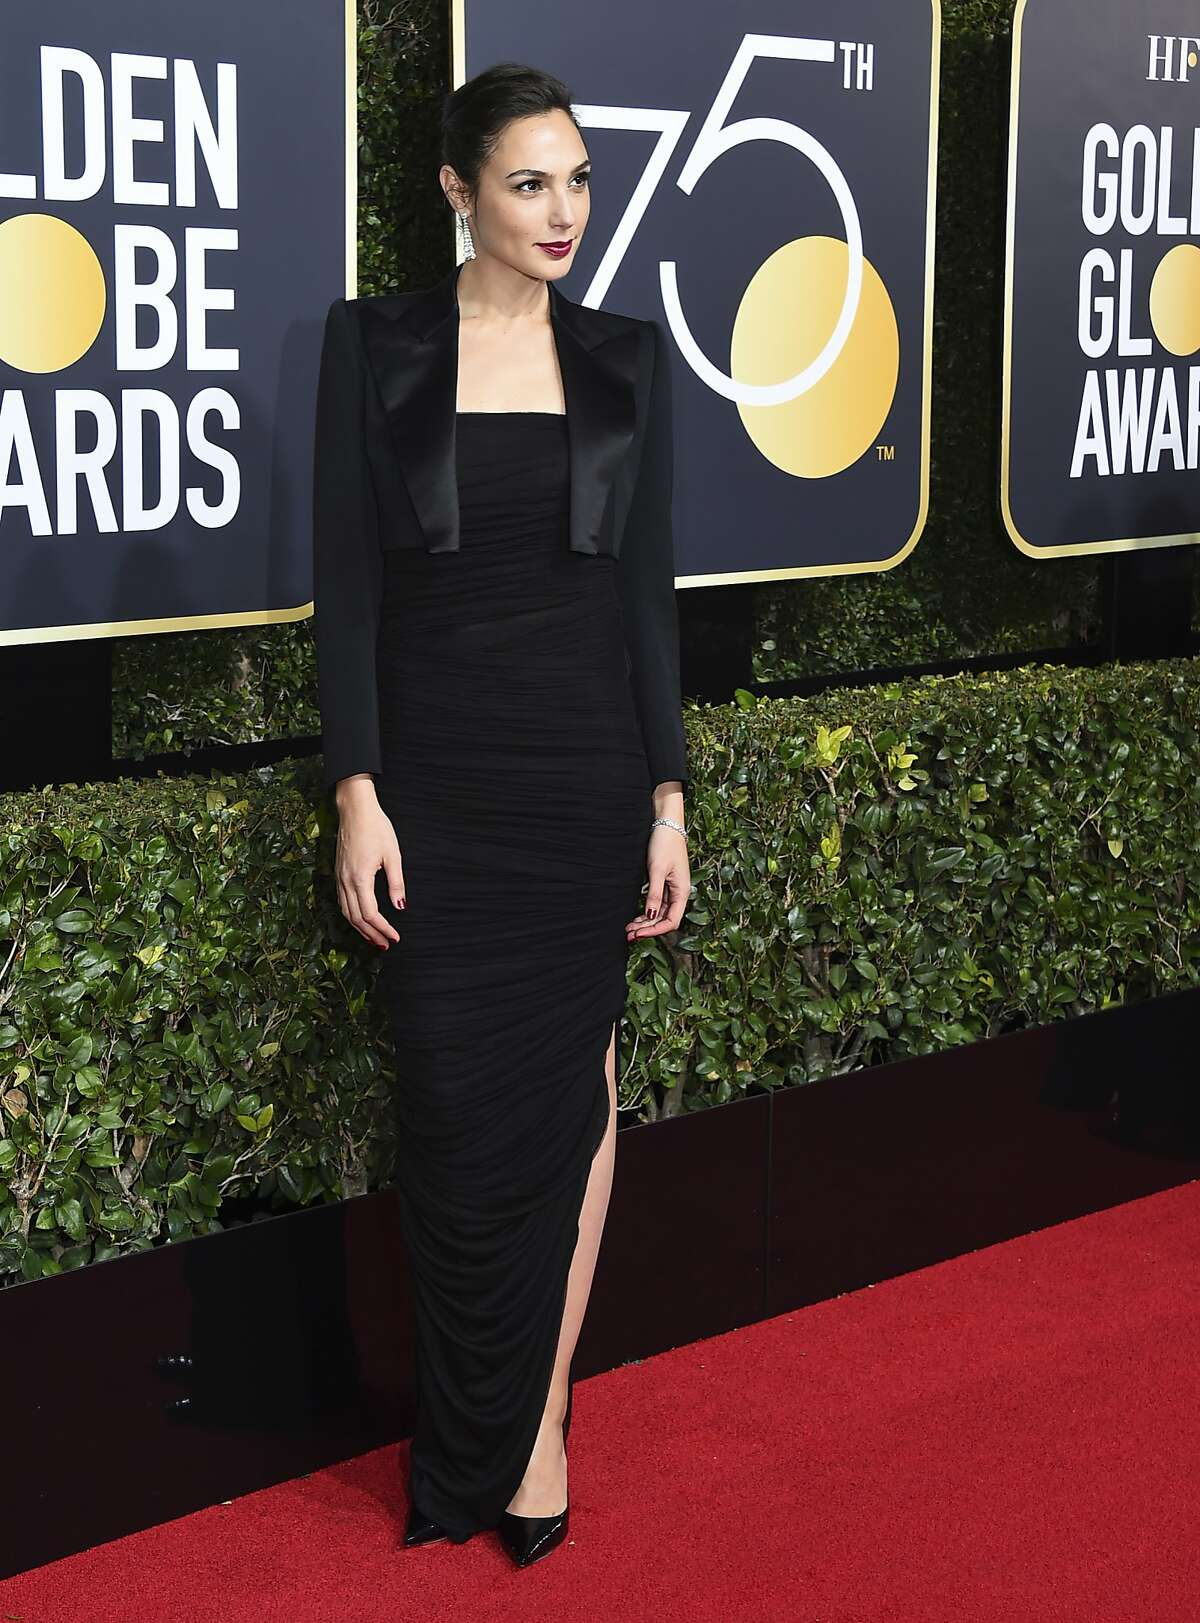 Gal Gadot arrives at the 75th annual Golden Globe Awards at the Beverly Hilton Hotel on Sunday, Jan. 7, 2018, in Beverly Hills, Calif. (Photo by Jordan Strauss/Invision/AP)